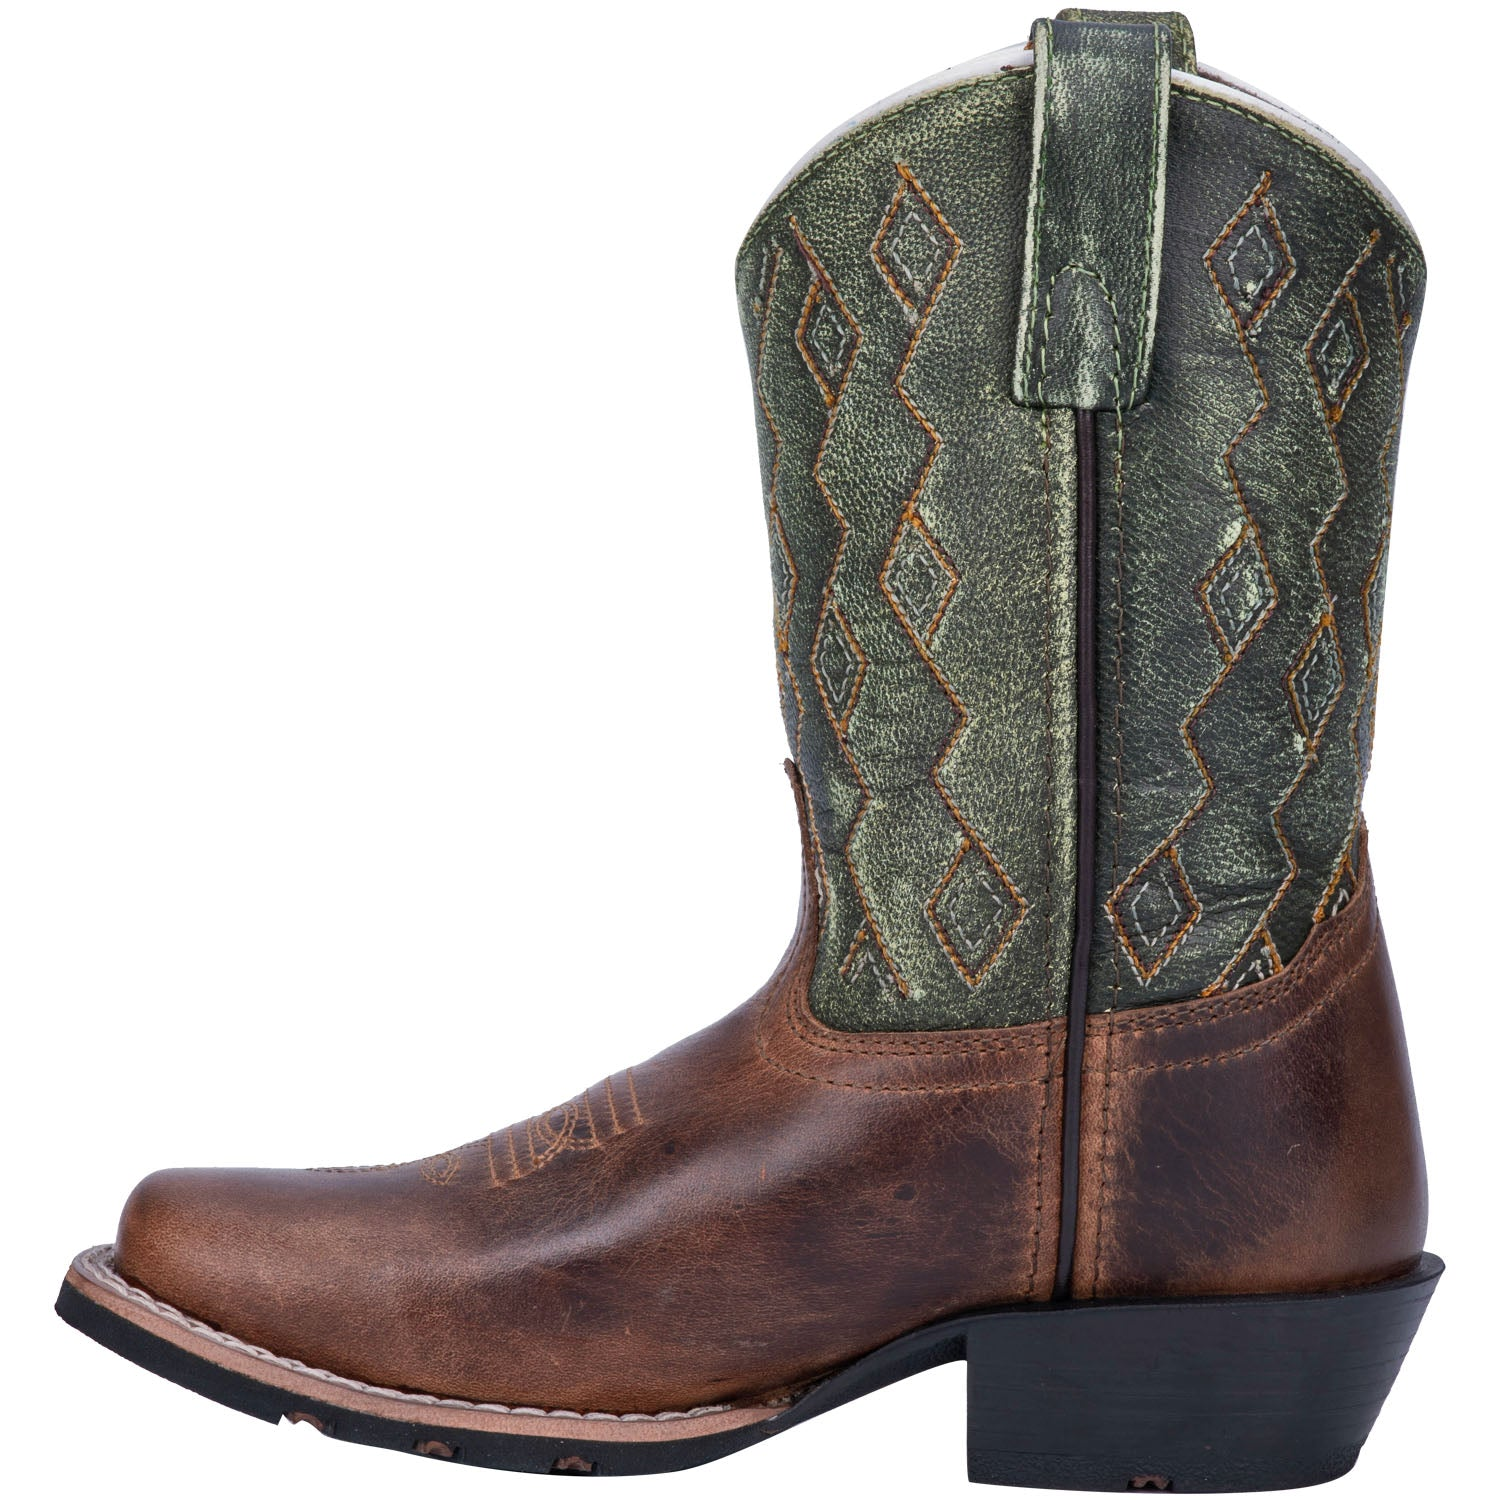 TEDDY LEATHER YOUTH BOOT 15521814577194